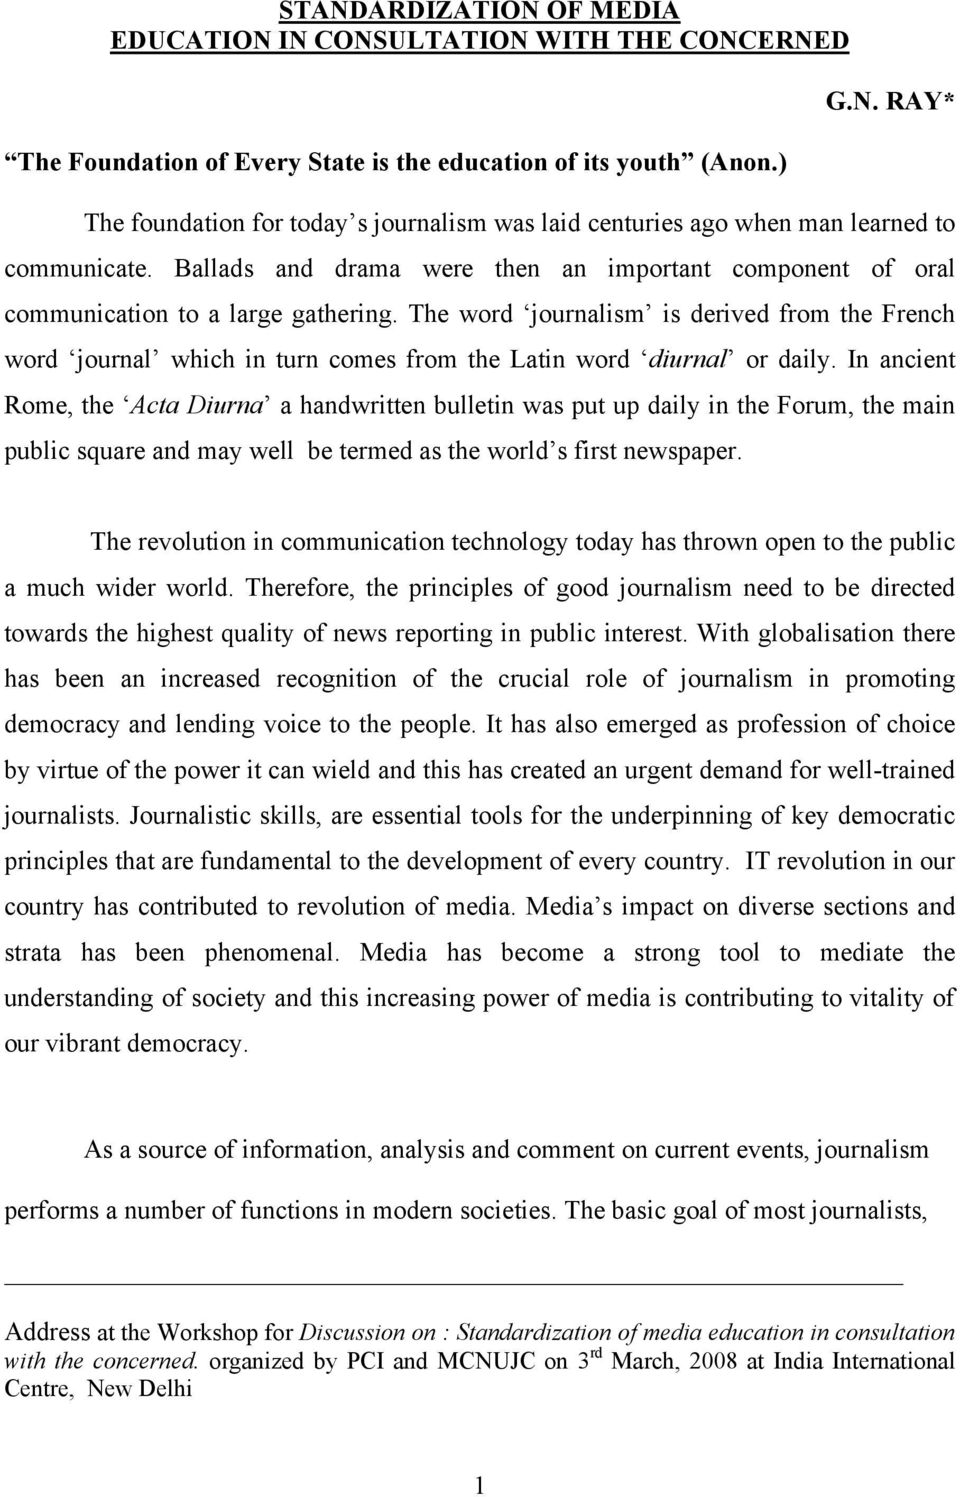 The word journalism is derived from the French word journal which in turn comes from the Latin word diurnal or daily.